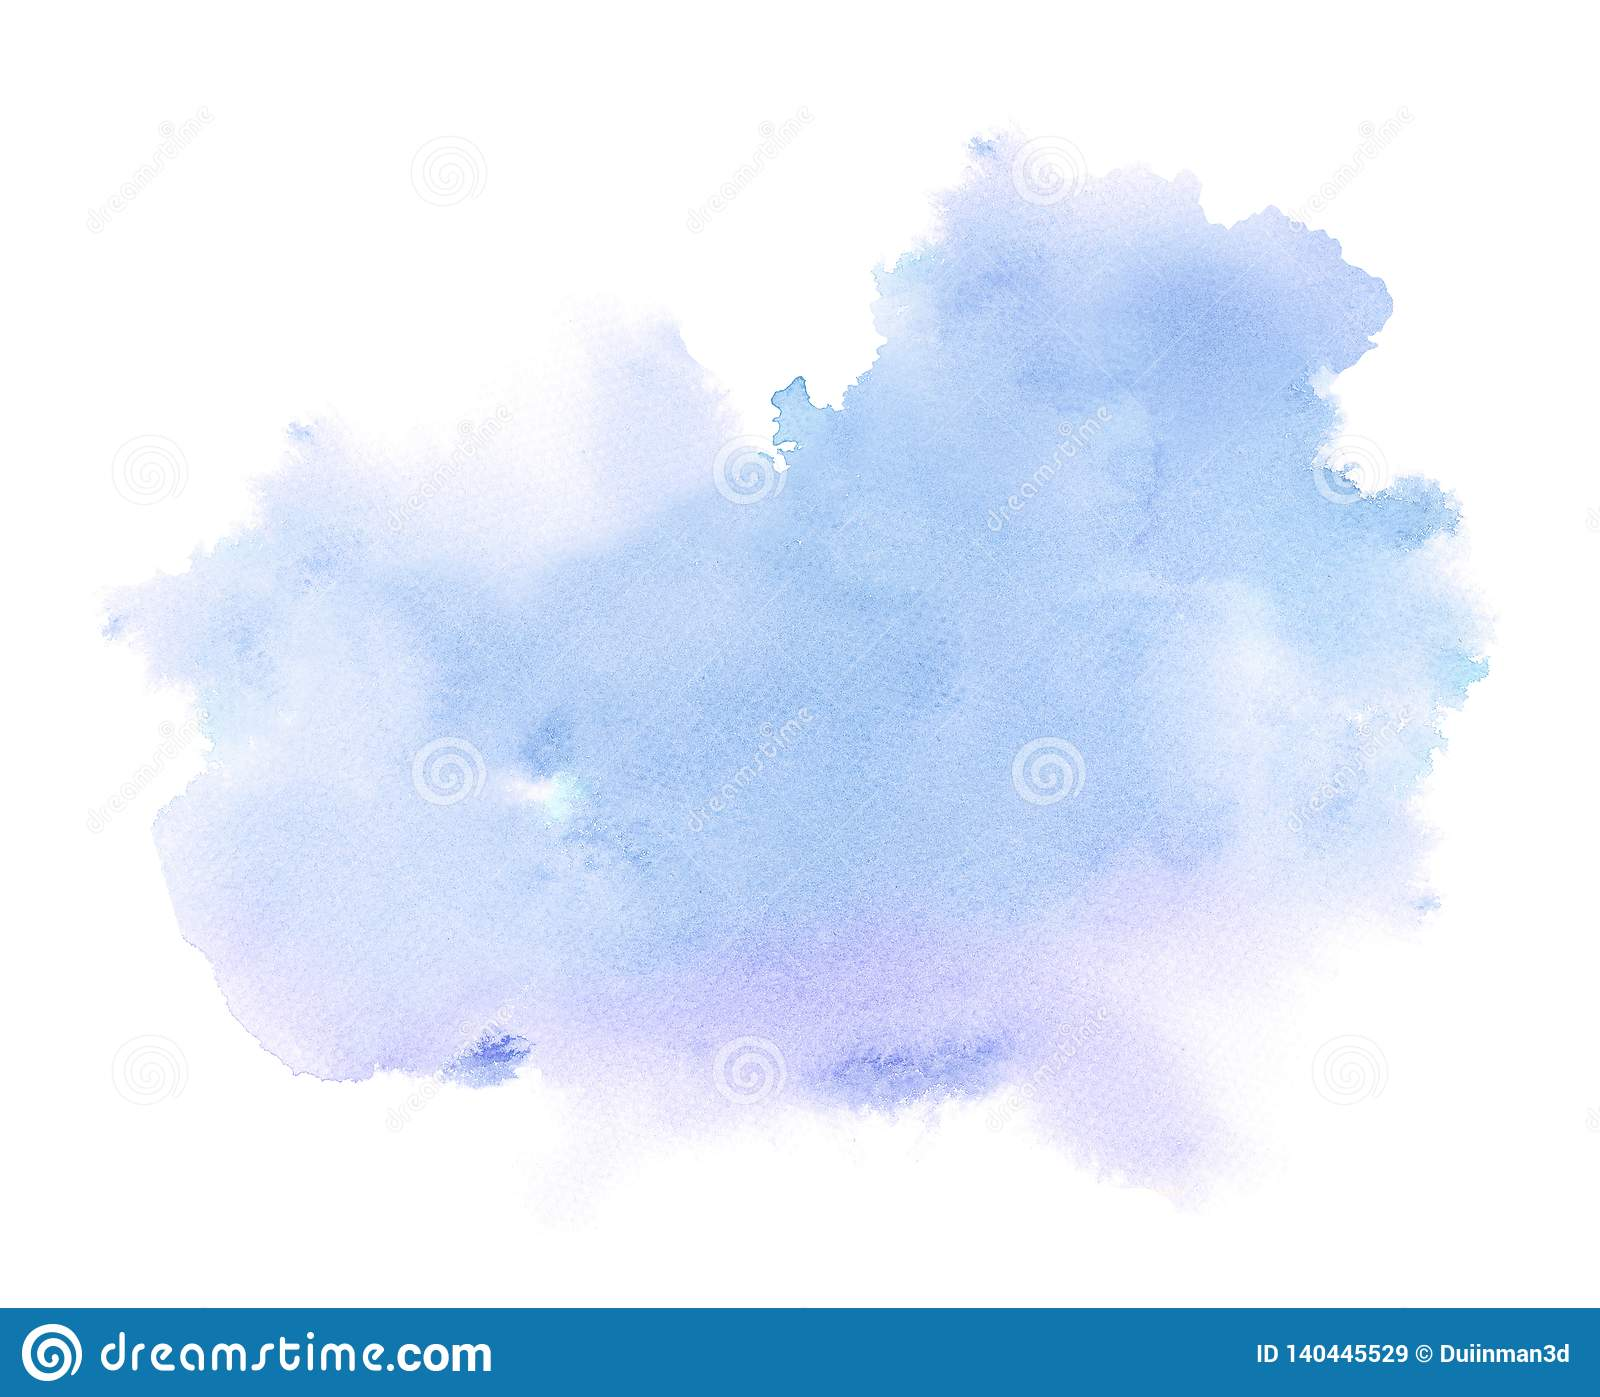 watercolor wet background blue and red watercolor on white background stock illustration illustration of blue isolated 140445529 dreamstime com